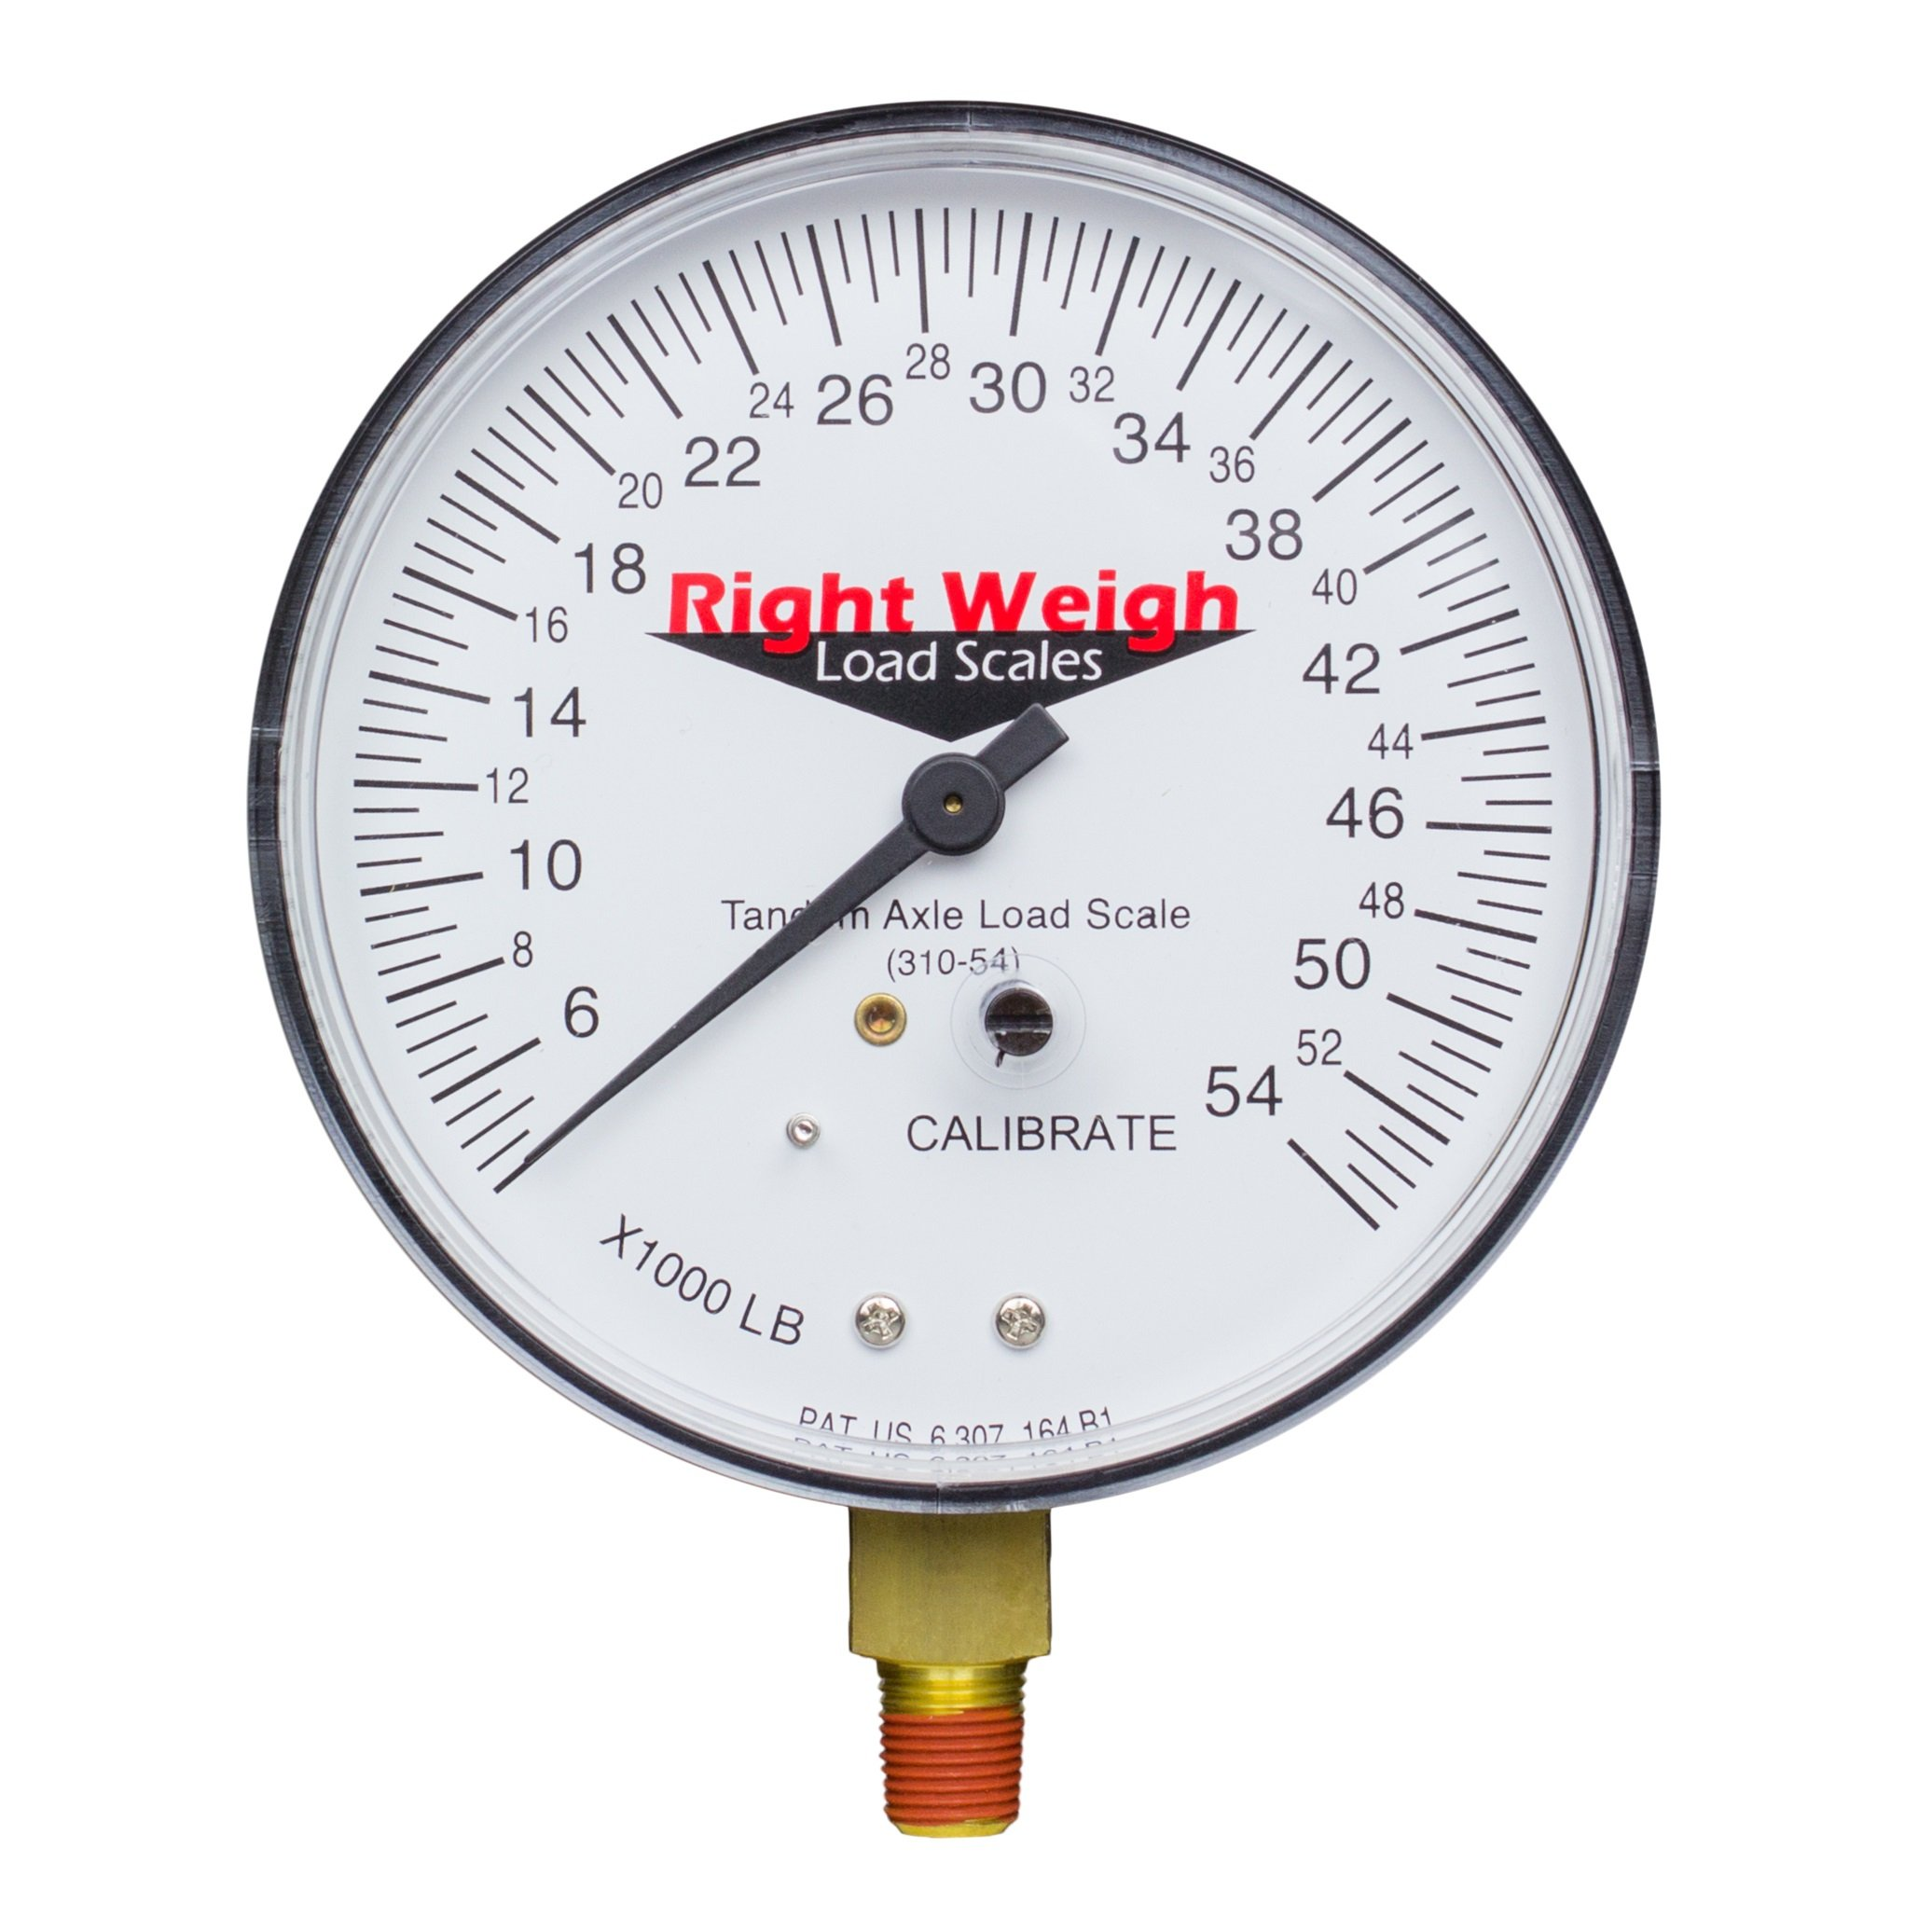 Right Weigh Replacement Gauge 310-54-GO (Gauge Only) Tandem-Axle Exterior Analog Axle Load Scale - for Single Height Control Valve Air Suspensions by Right Weigh Load Scales